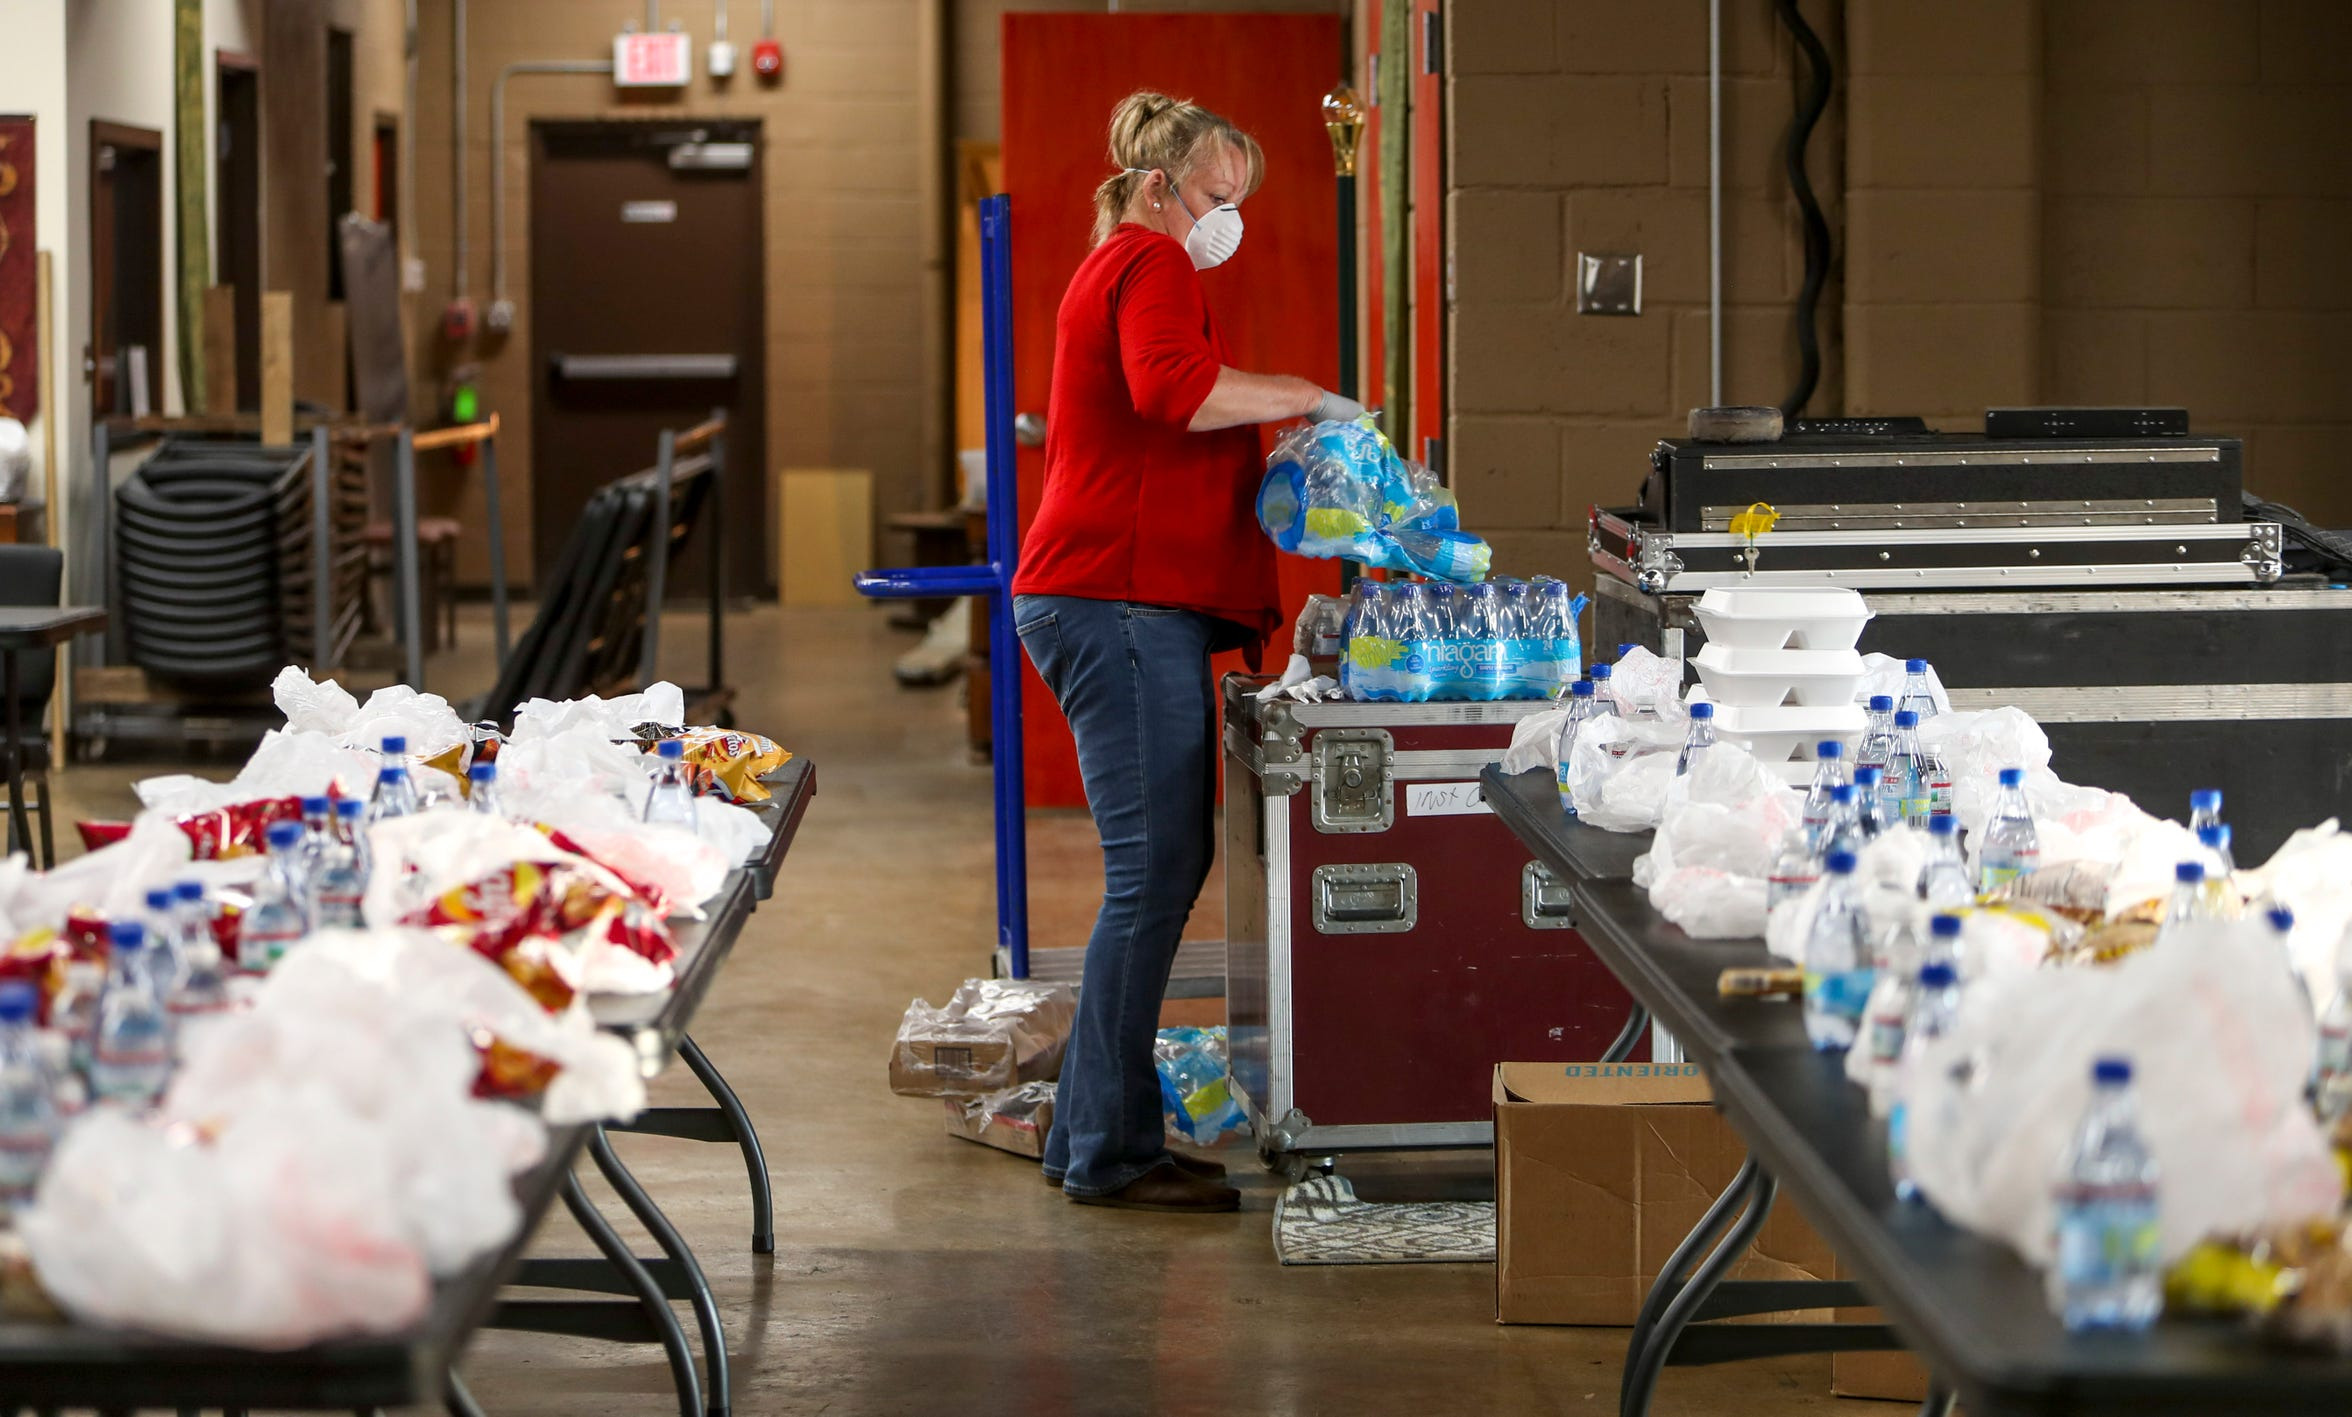 Ellen McGillvary organizes bags to be distributed with hot meals at Manna Cafe Ministries in Clarksville, Tenn., on Wednesday, April 8, 2020.